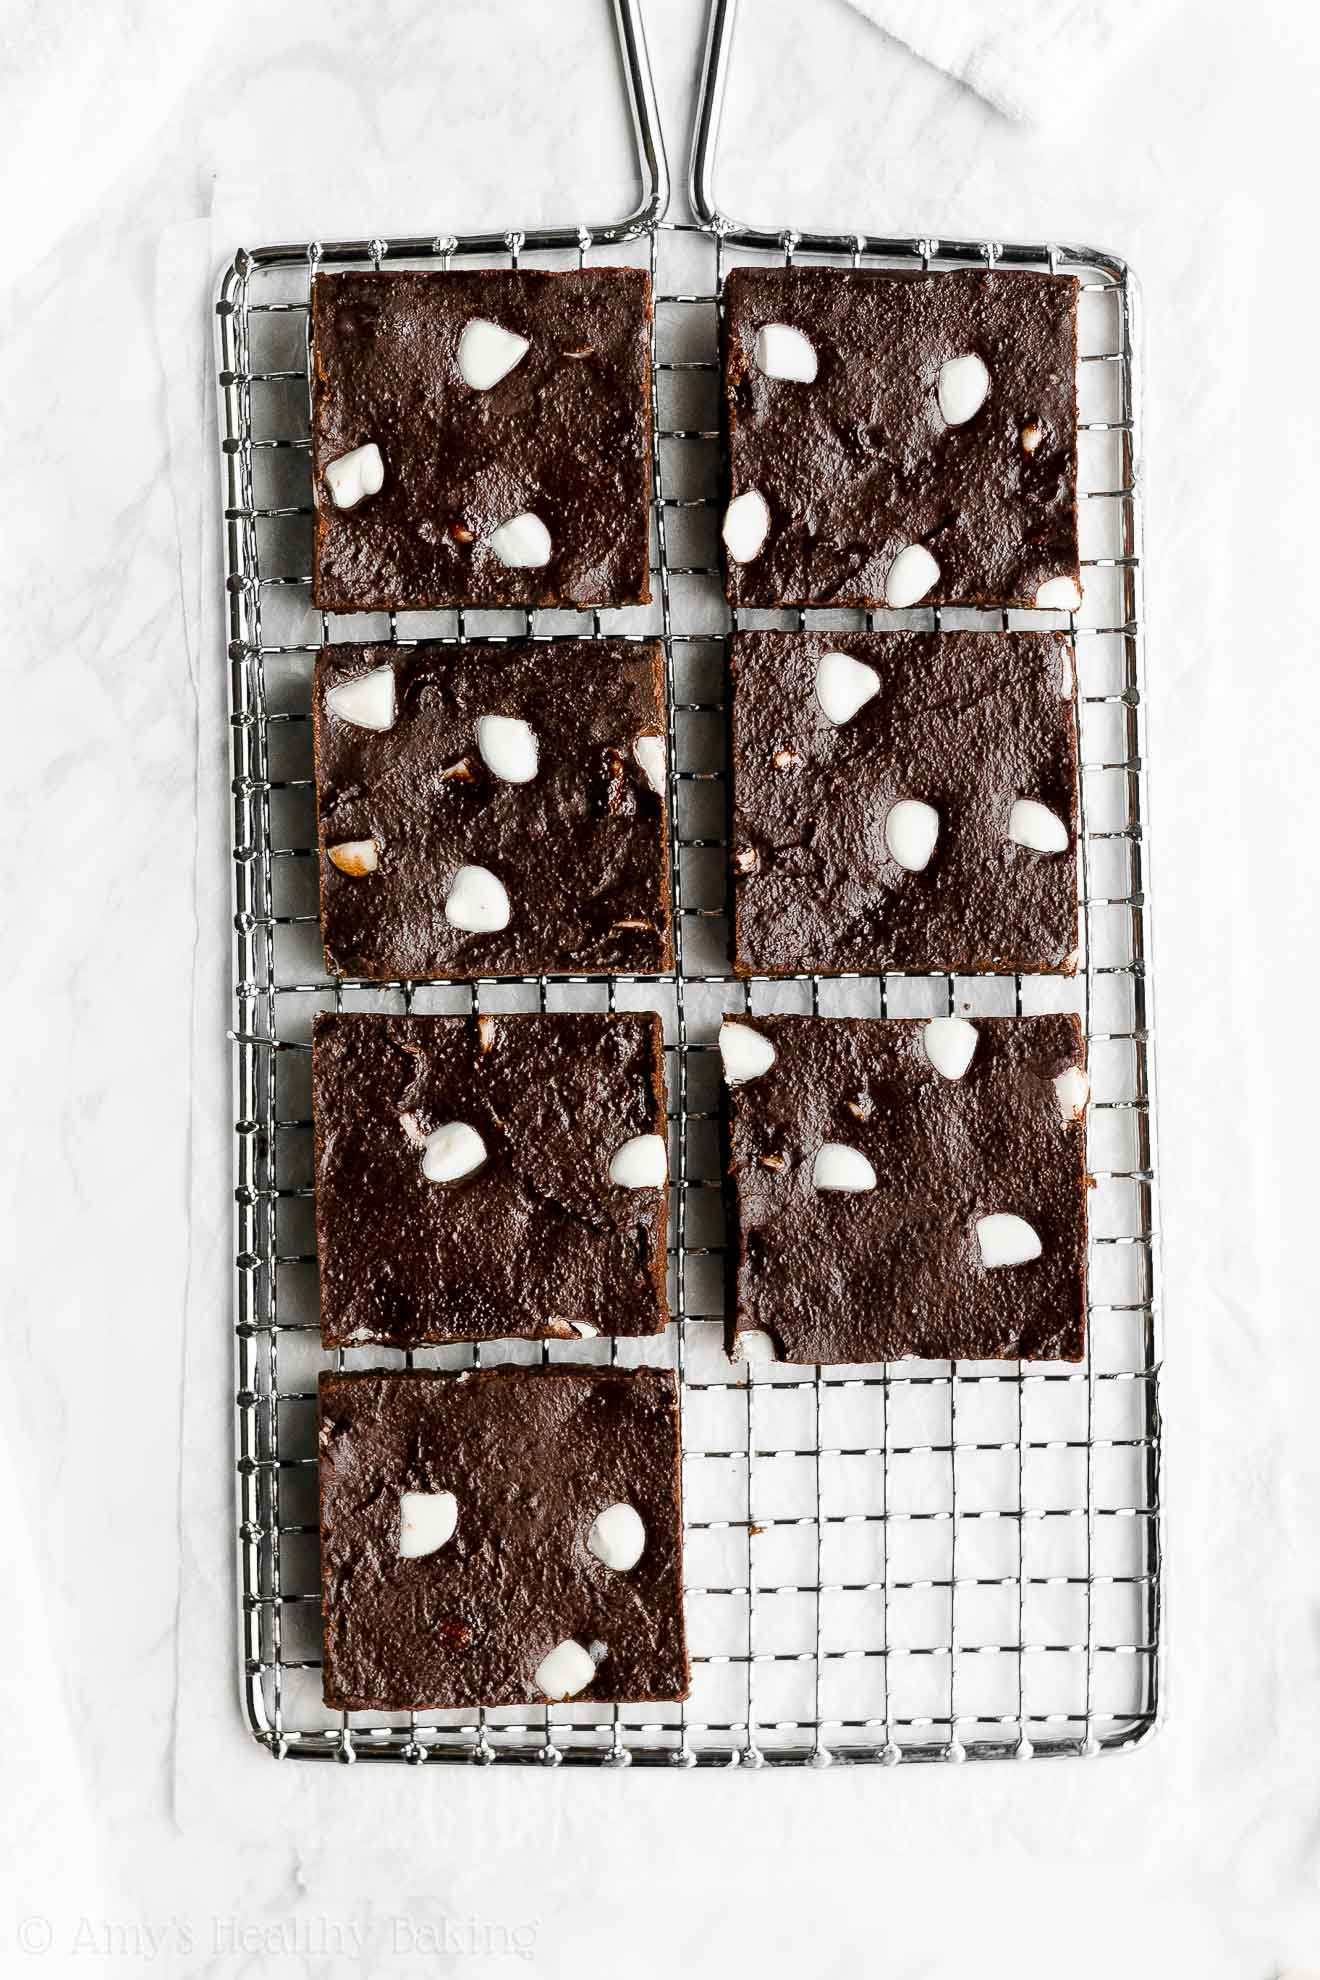 Best Simple Healthy Greek Yogurt Chewy Fudgy White Chocolate Chip Brownies